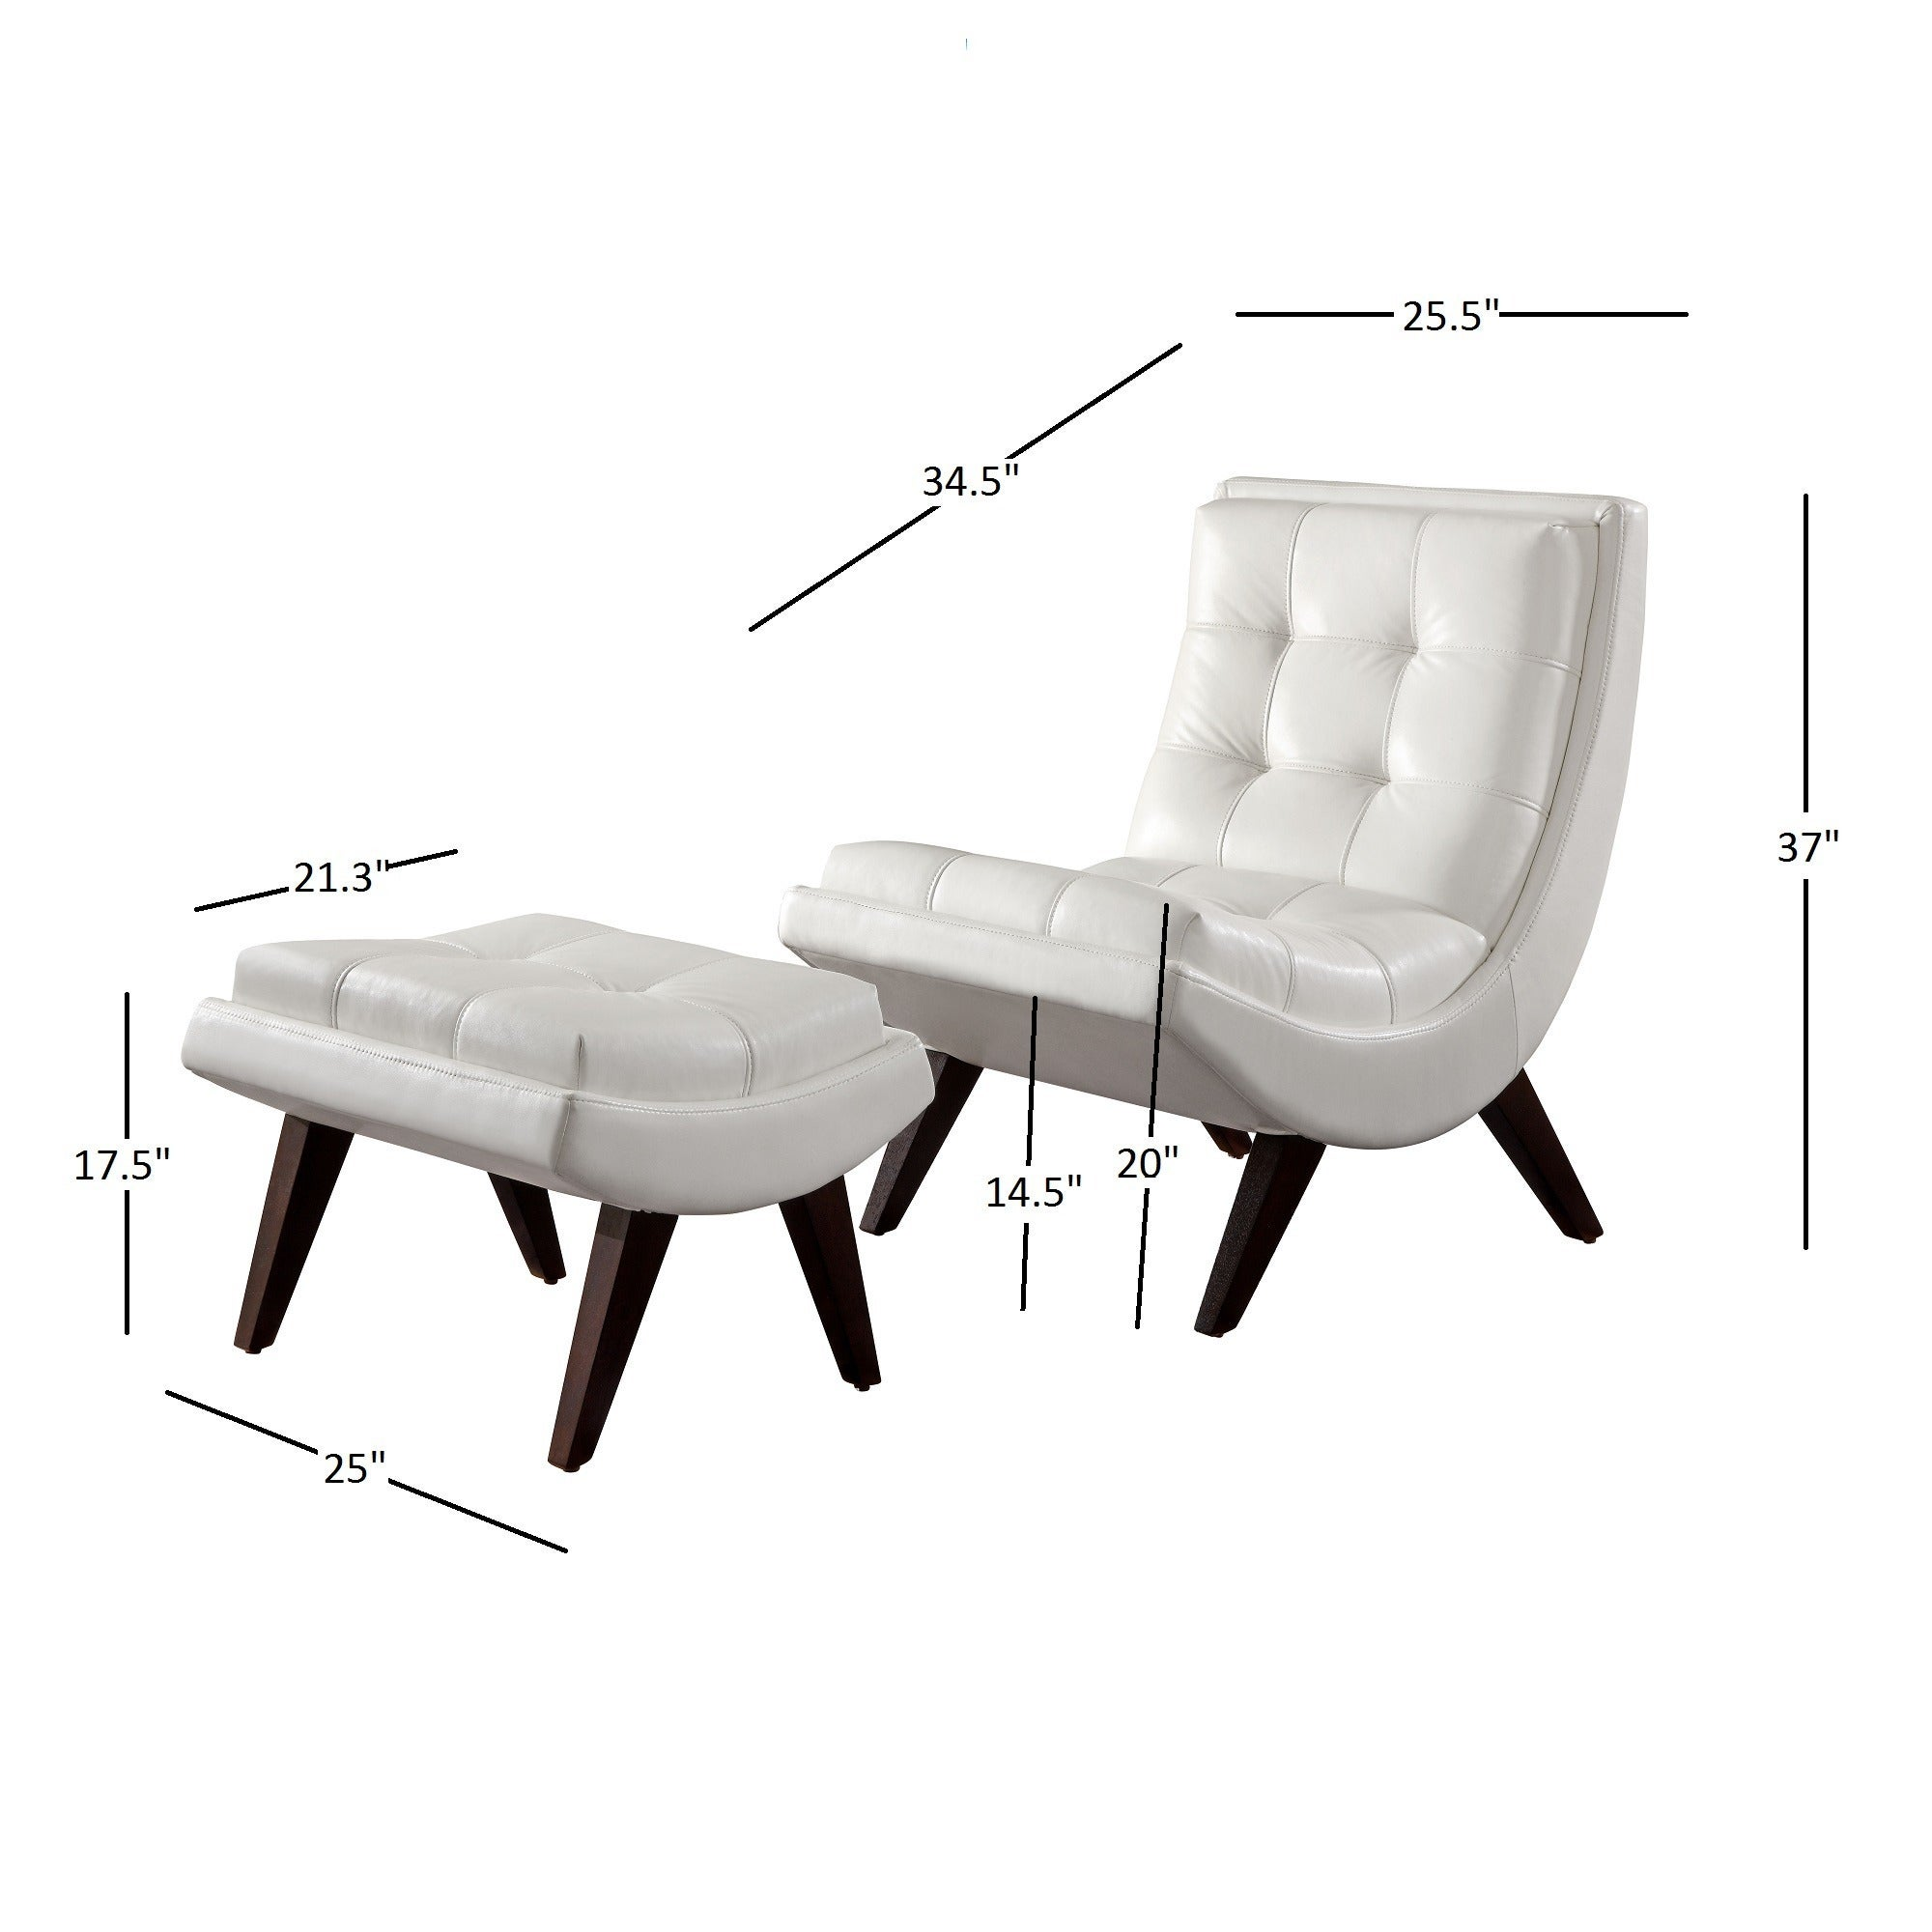 overstock chair convenience storage avenue and chairs concepts ottoman ottomans home garden product